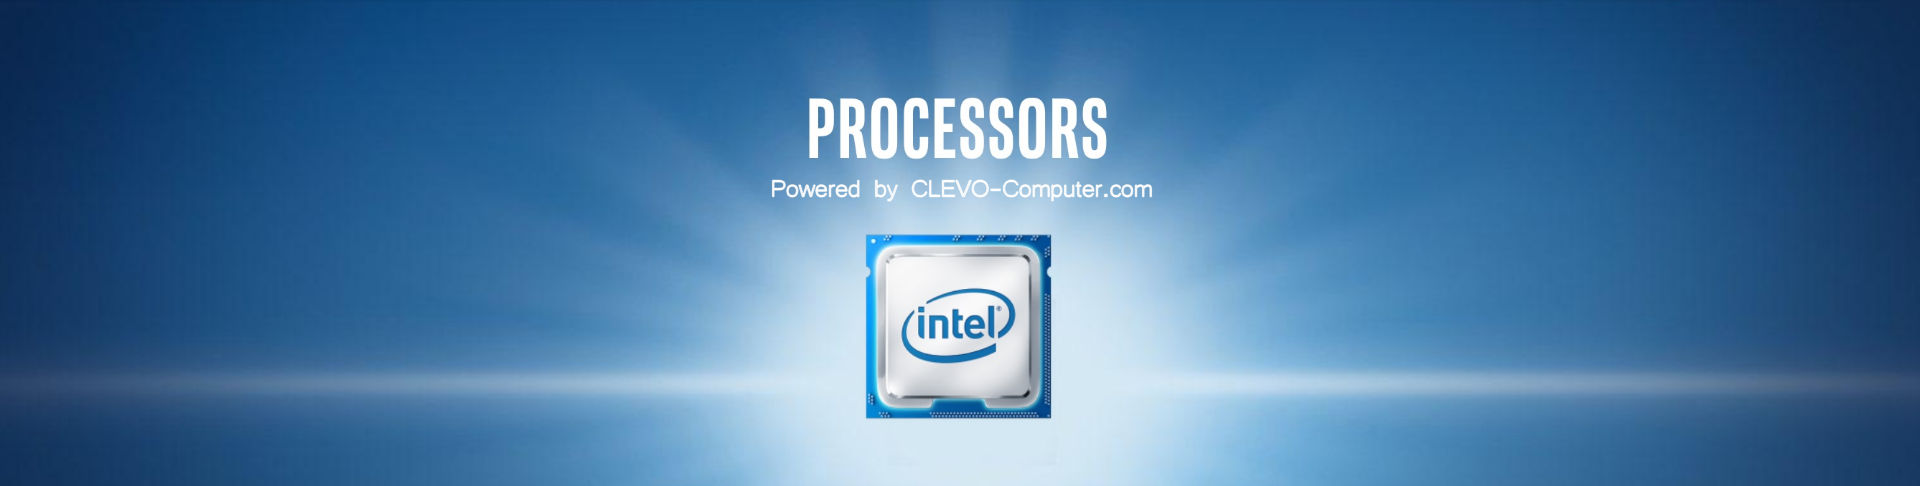 intel-core-desktop-cpu-powered-by-clevo-computer